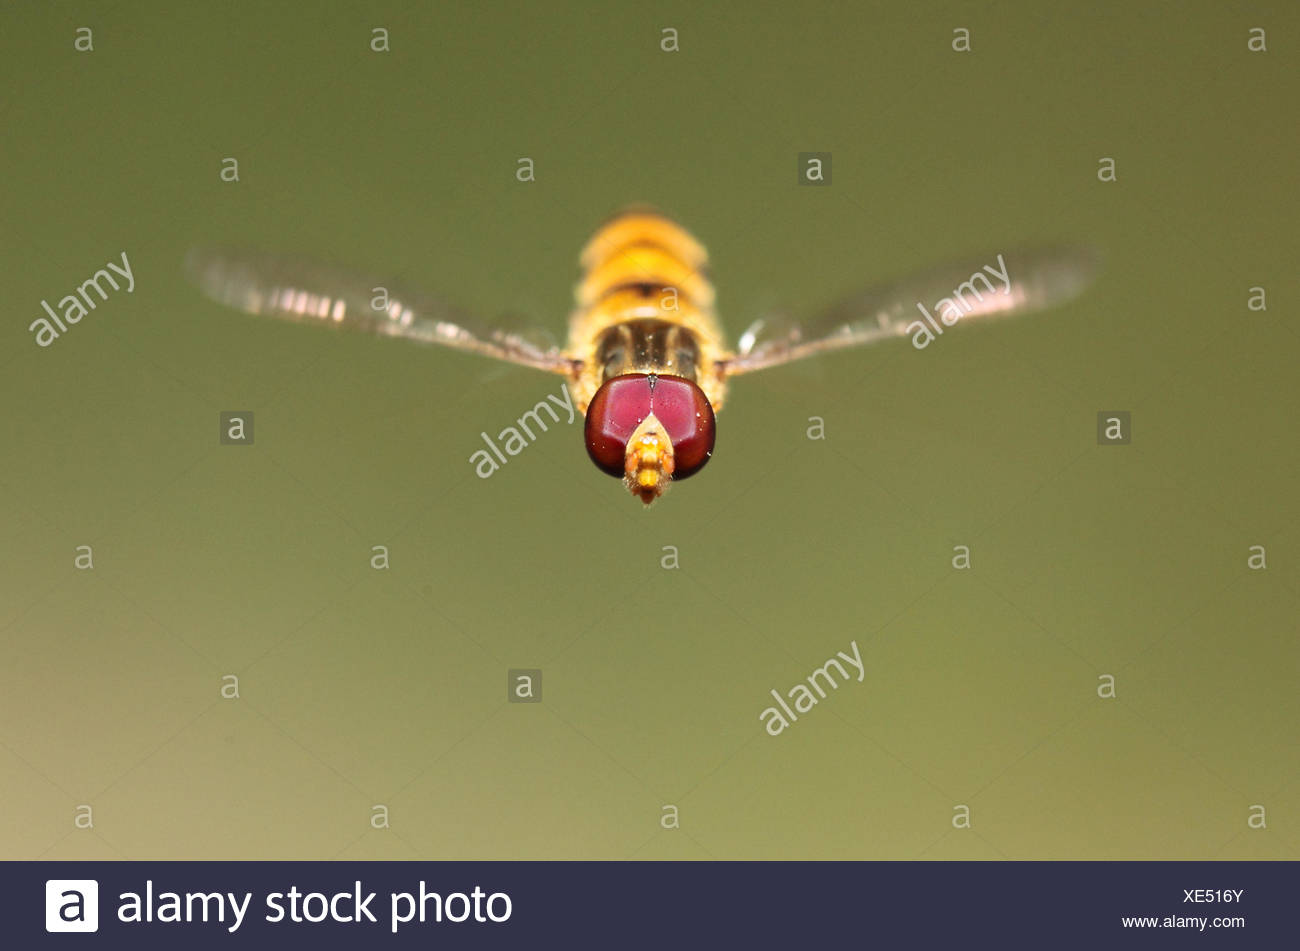 Close up portrait of a hover or syrphid fly with pollen grains on its compound eyes. Records show that their speed can be up to 300 wing beats per second. - Stock Image